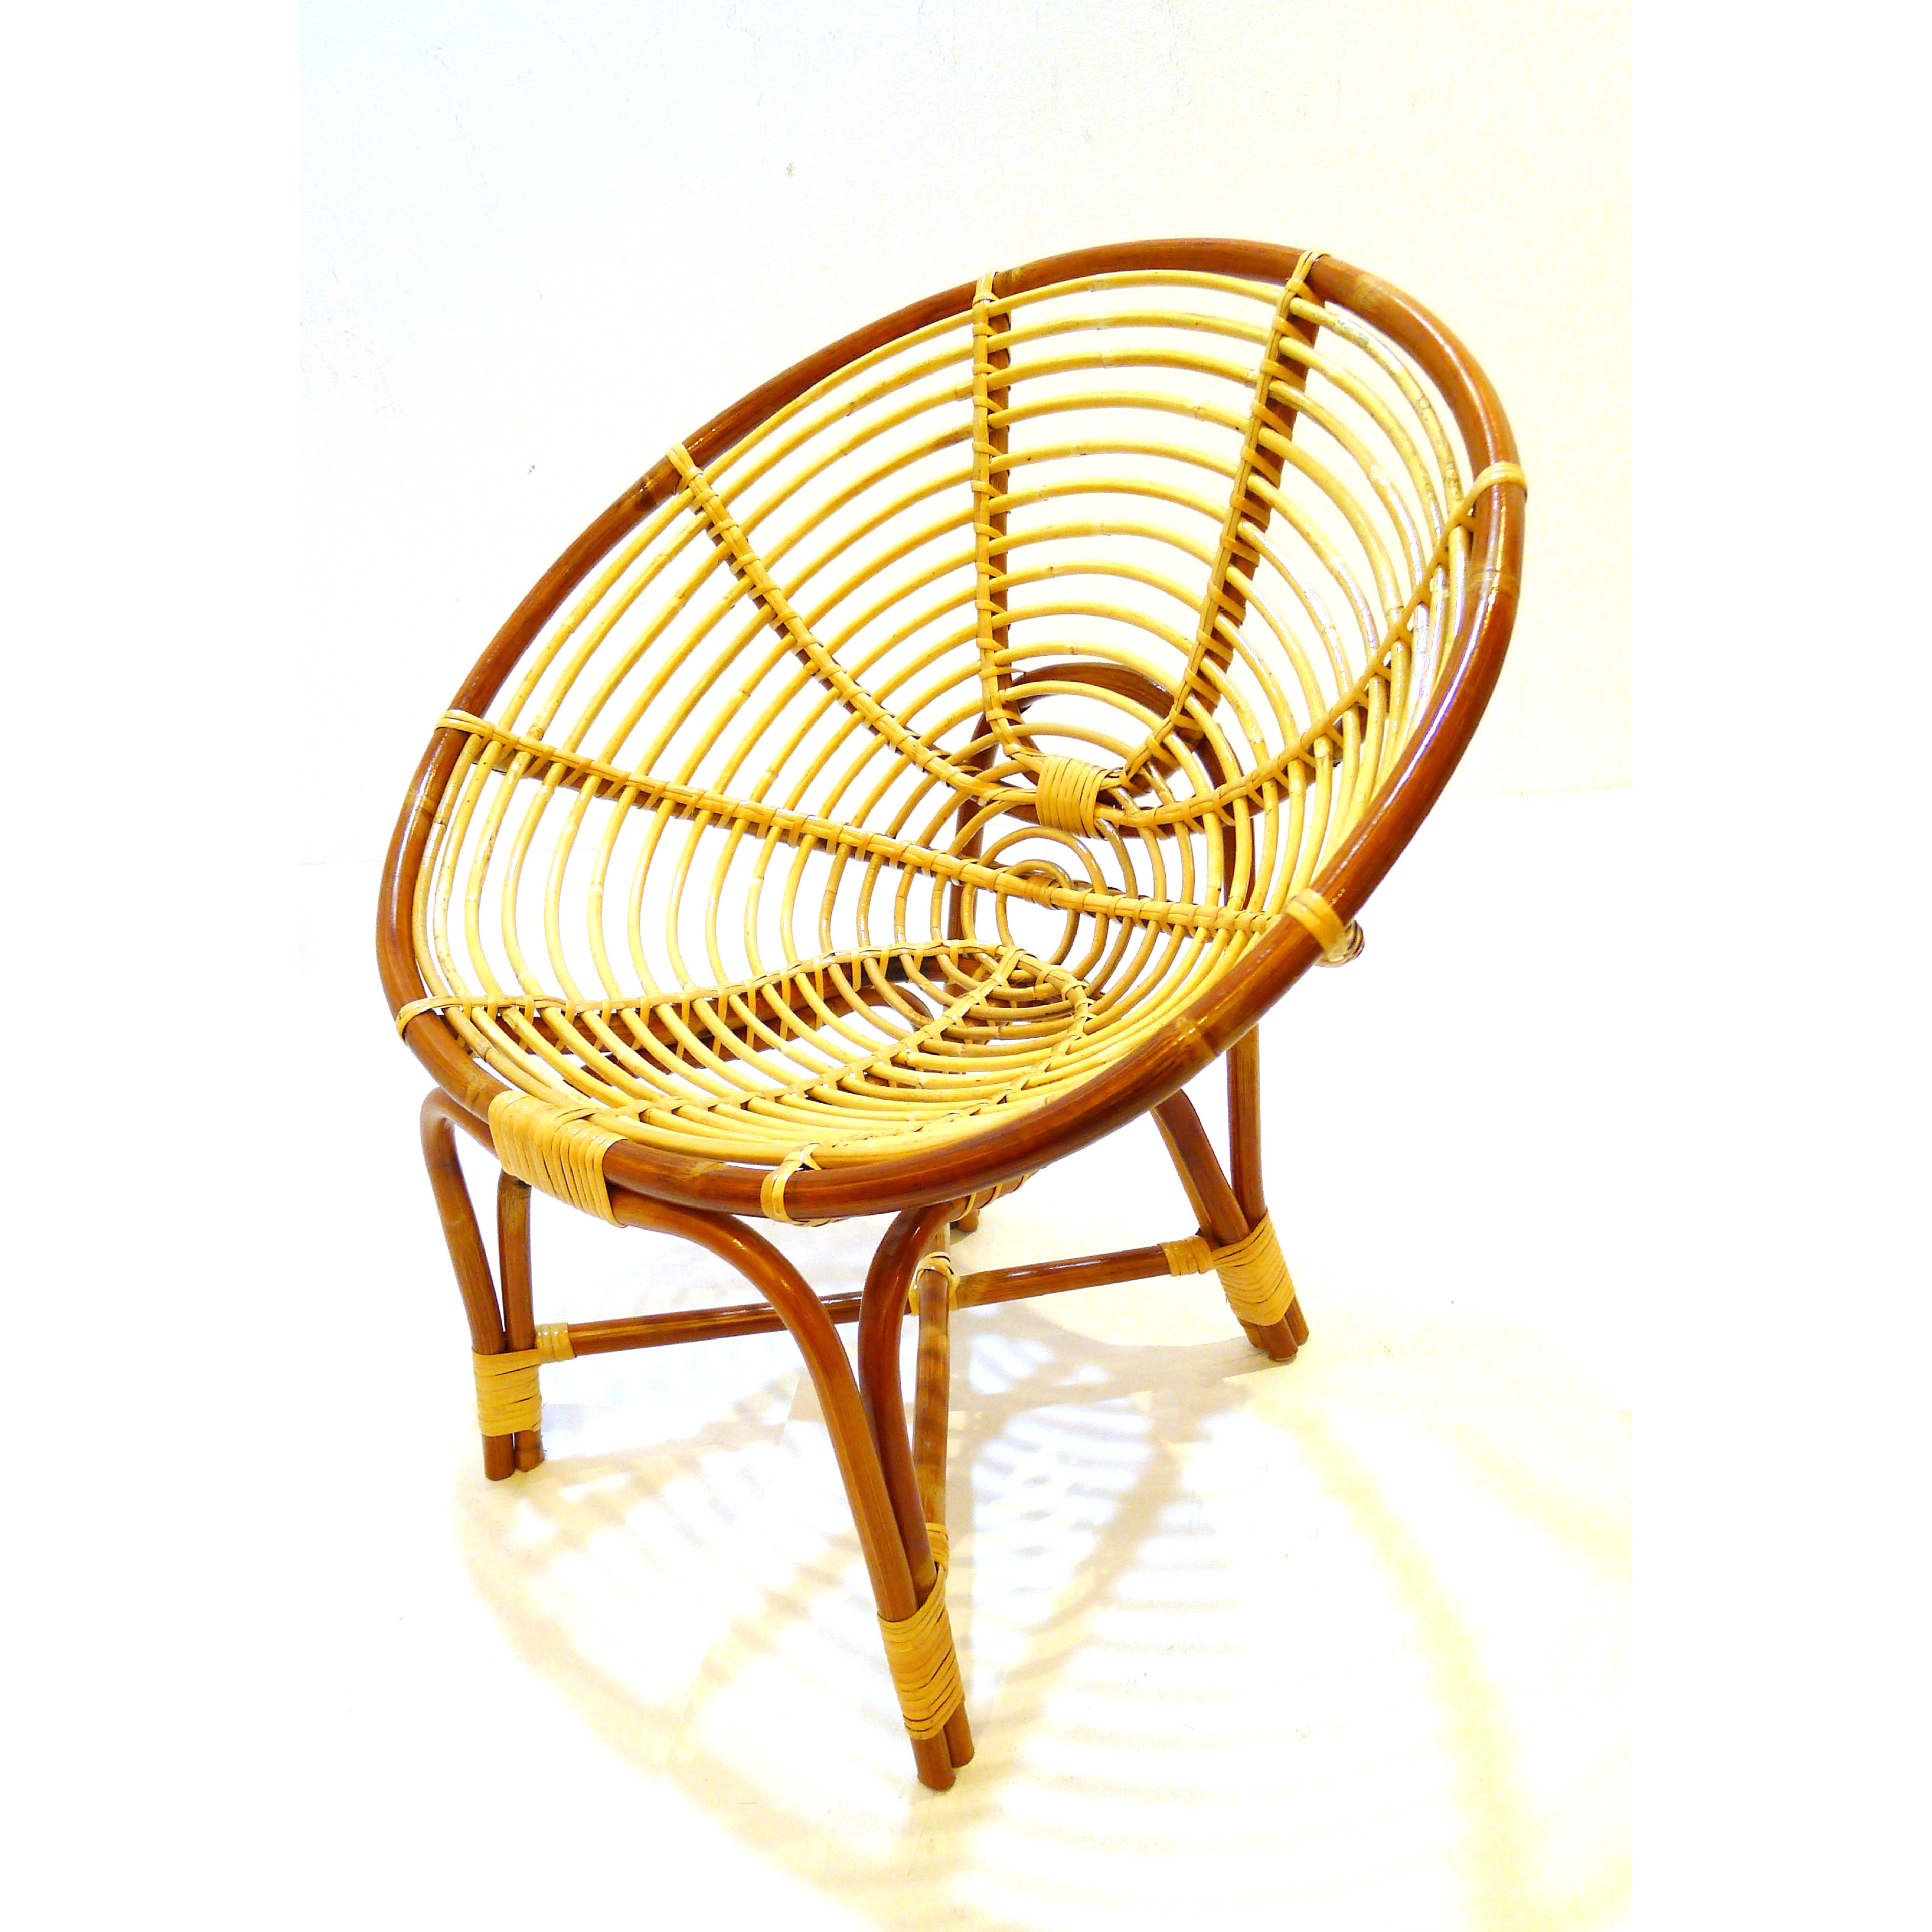 Medium Spiral Brown Rattan Chair | Furniture & Home Décor ...